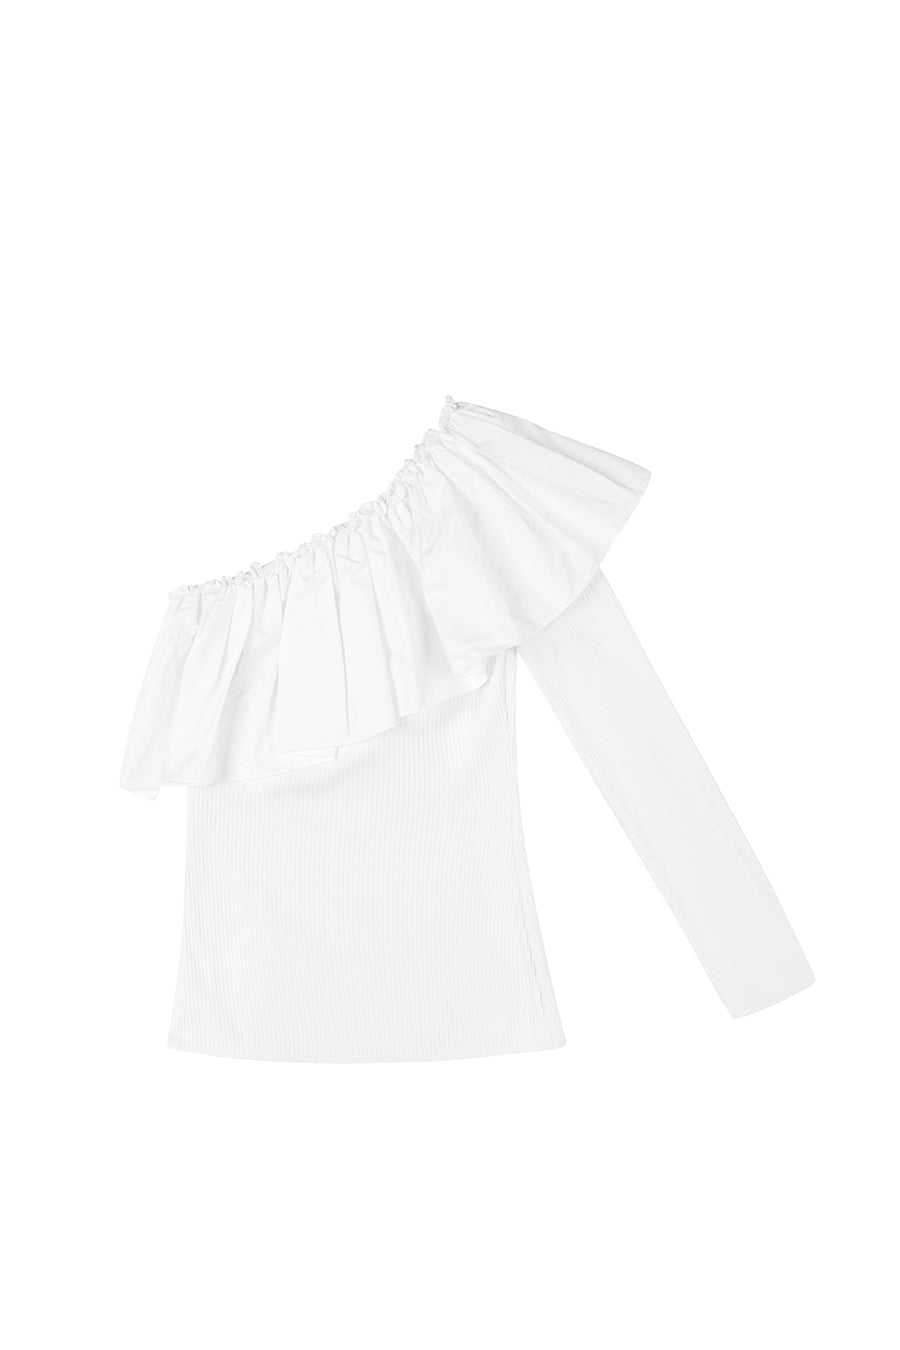 By Johnny Cotton Wave Shoulder Top in White